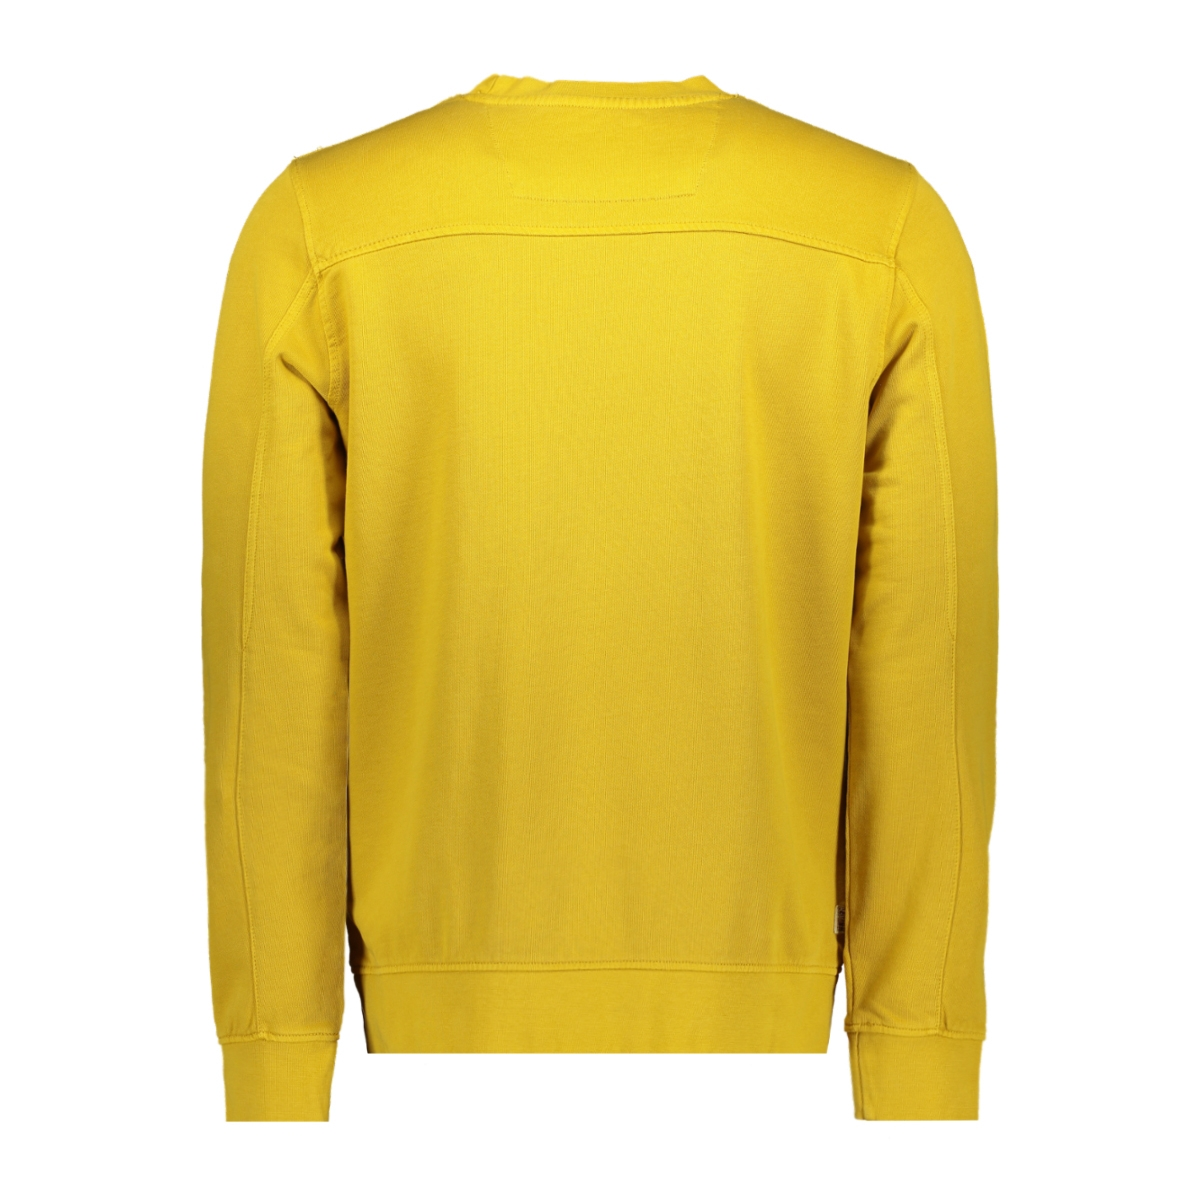 dry terry psw192411 pme legend sweater 1074